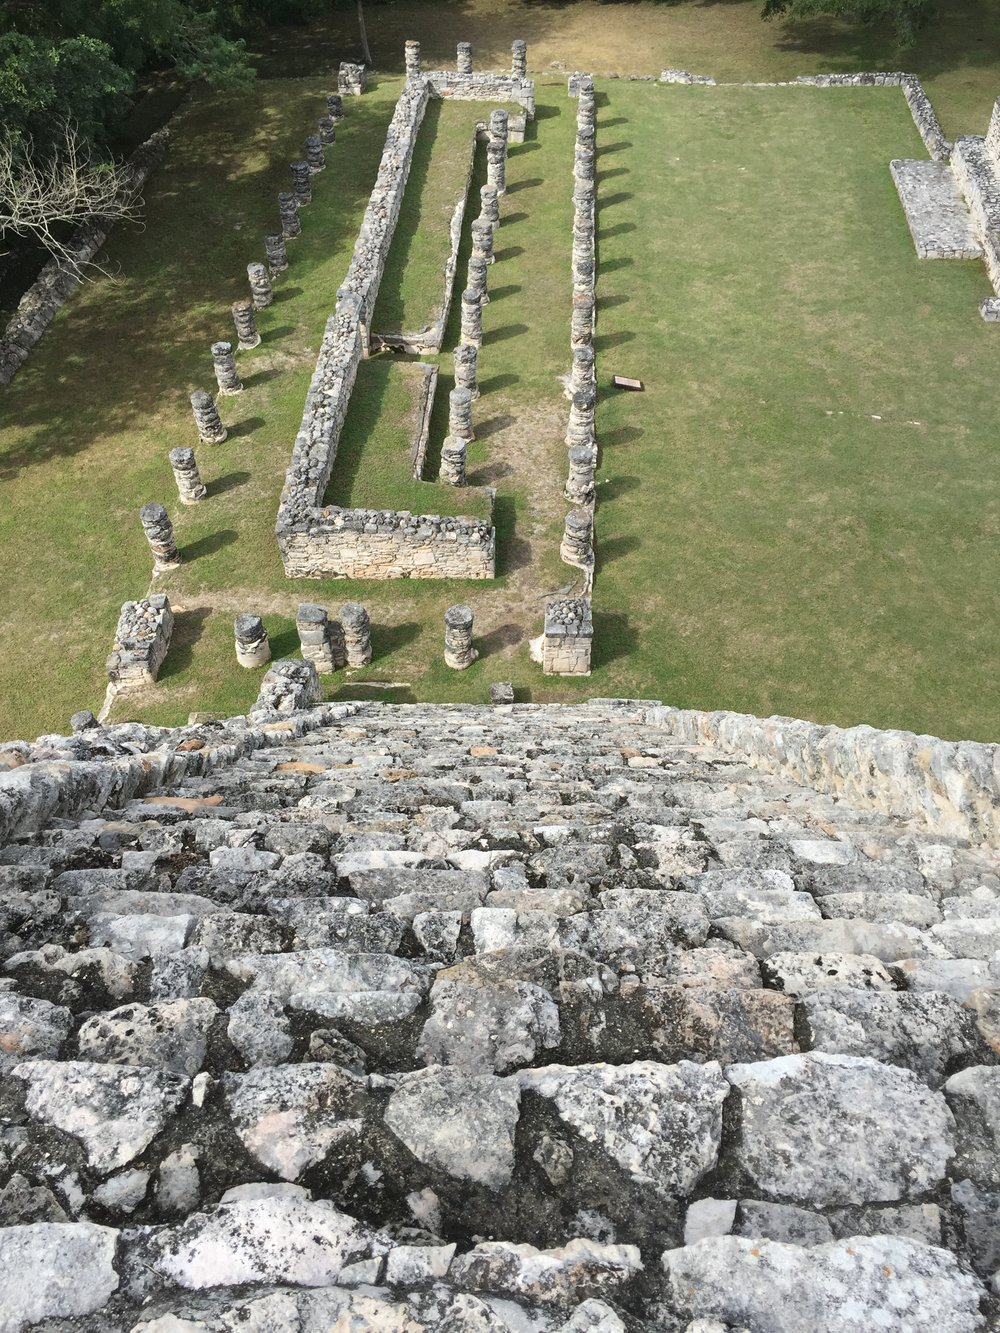 The climb down from the tallest structure at Mayapan